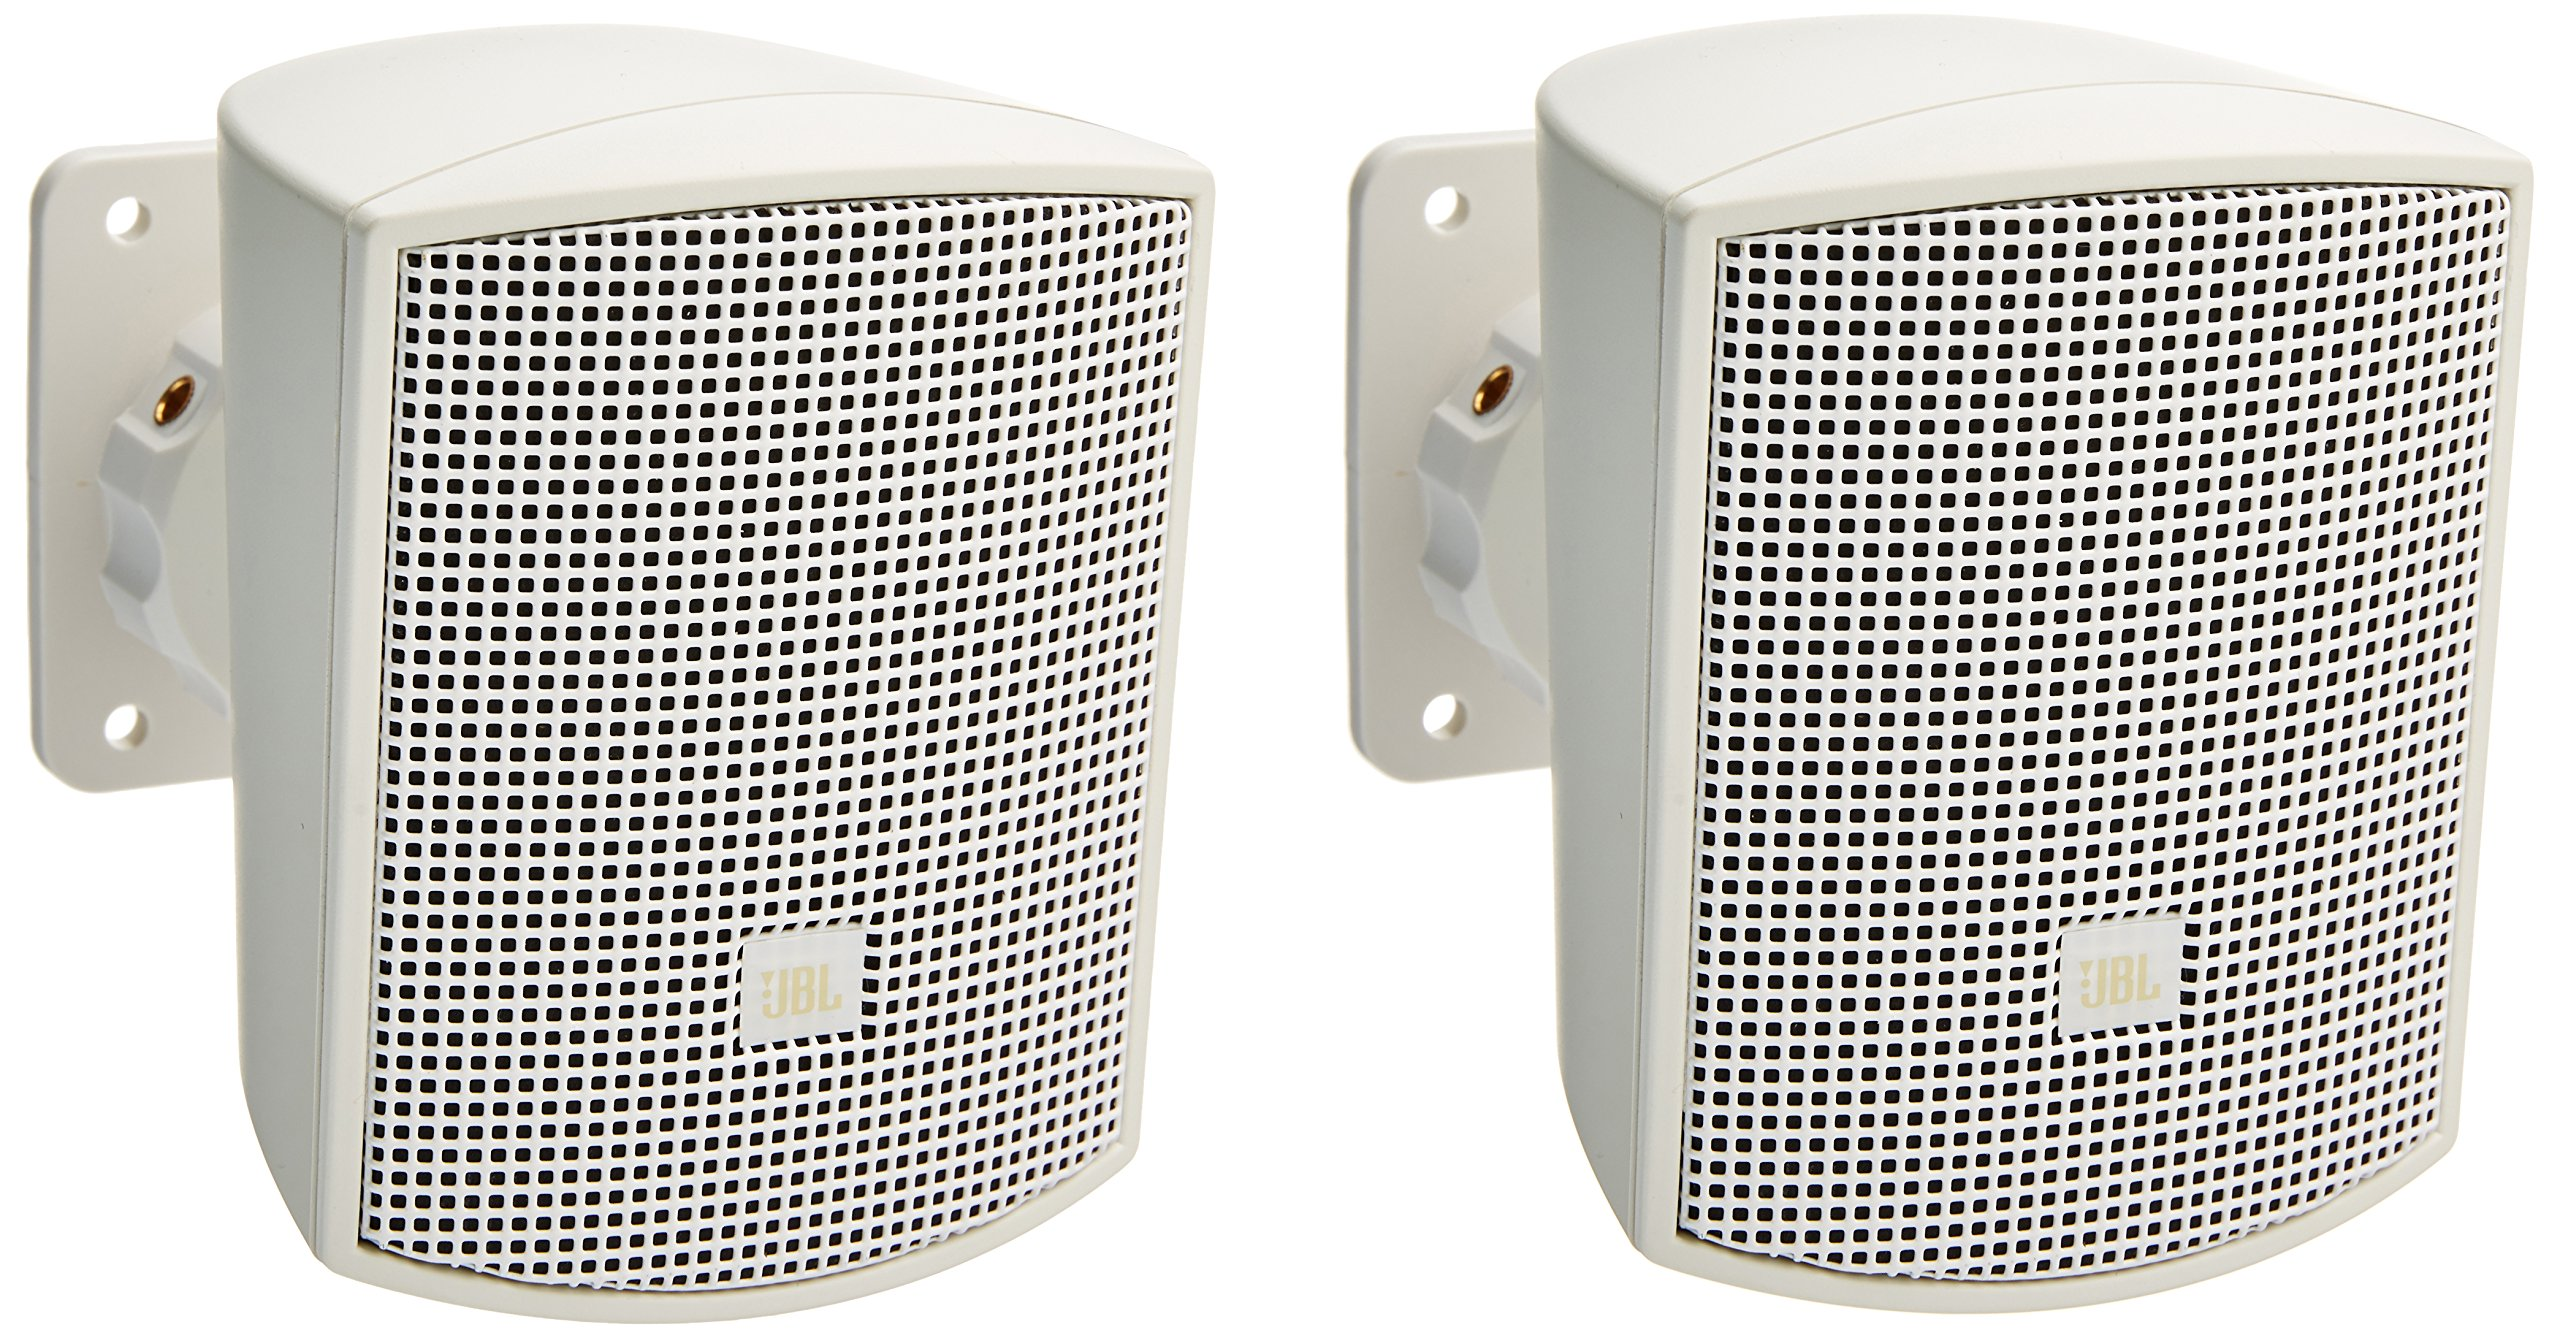 Jbl Professional Jbl Control 52 Surface Mount Speaker For